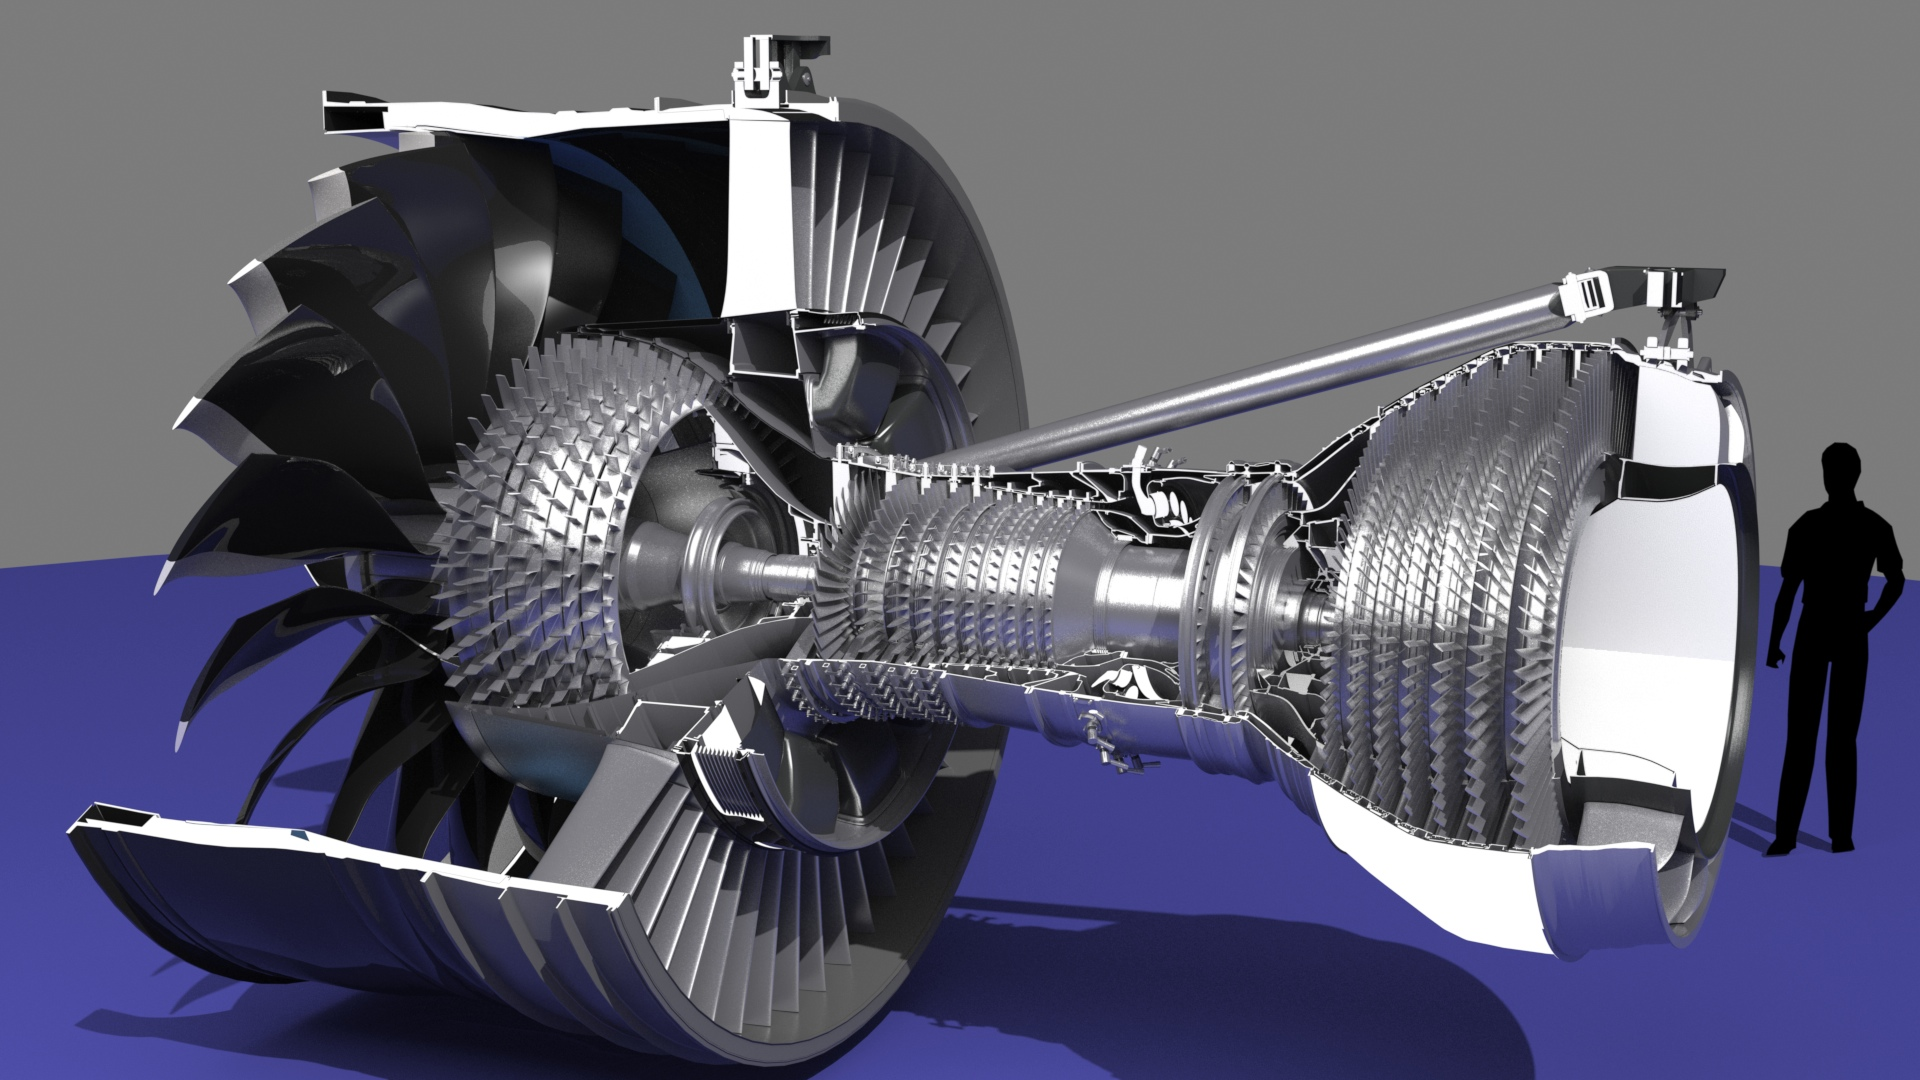 Mike James Media General Electric Genx 1b Engine Project 747 Jet Diagram Turbojet The Whole